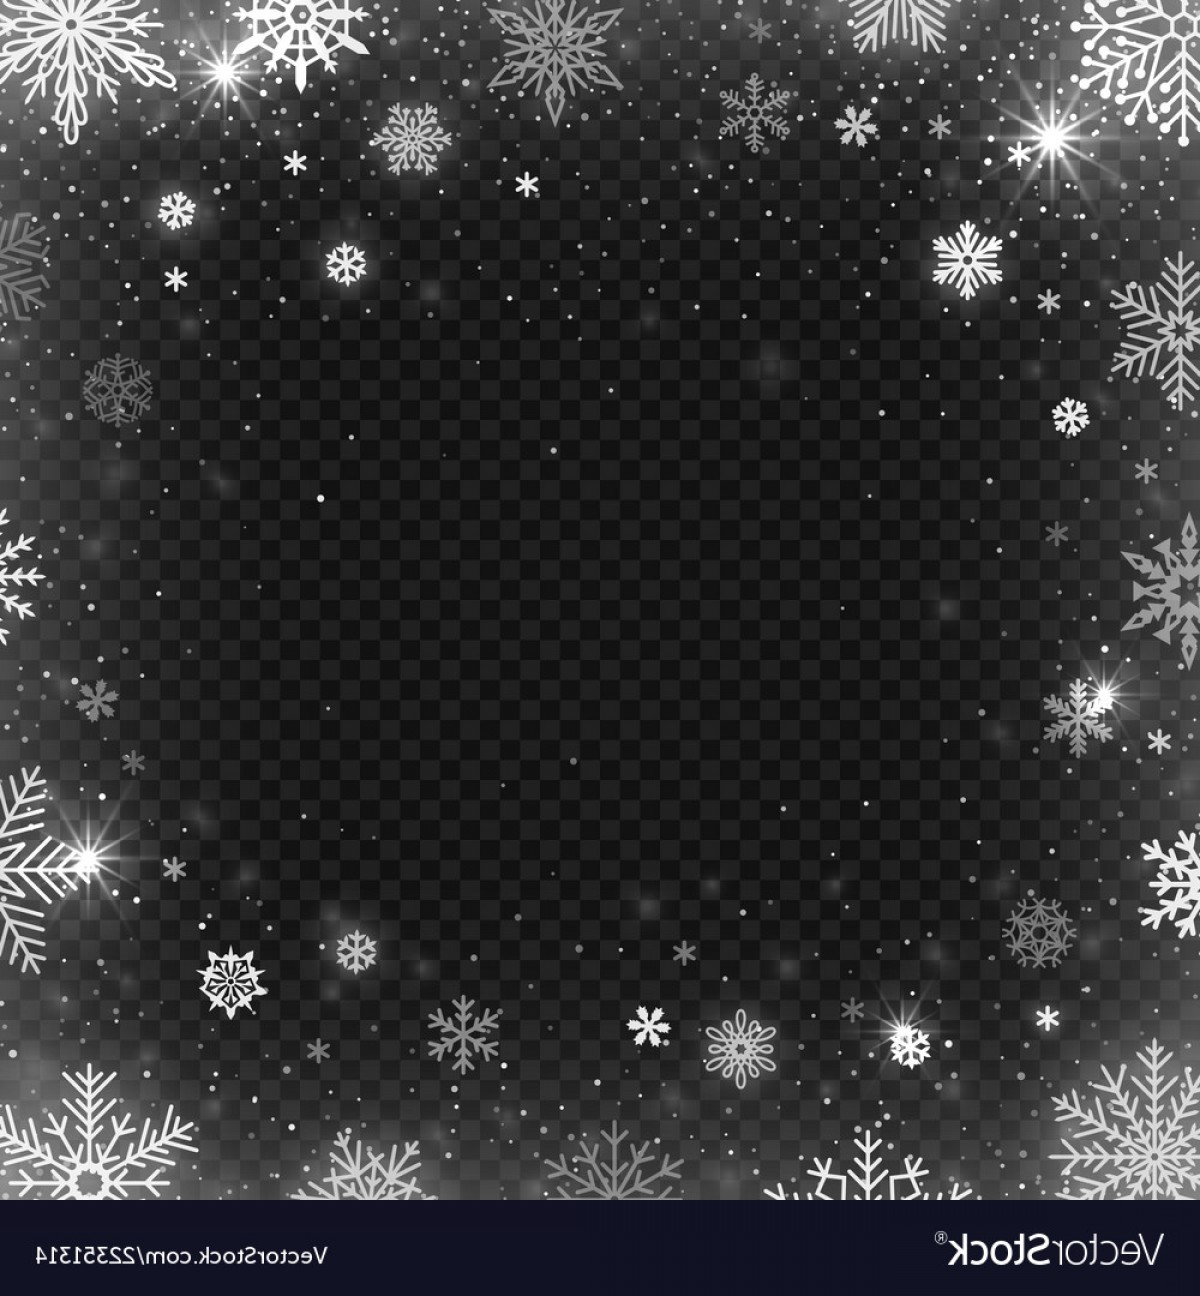 Frost Border Vector: Snowflakes Frame Winter Snowed Border Frost Vector